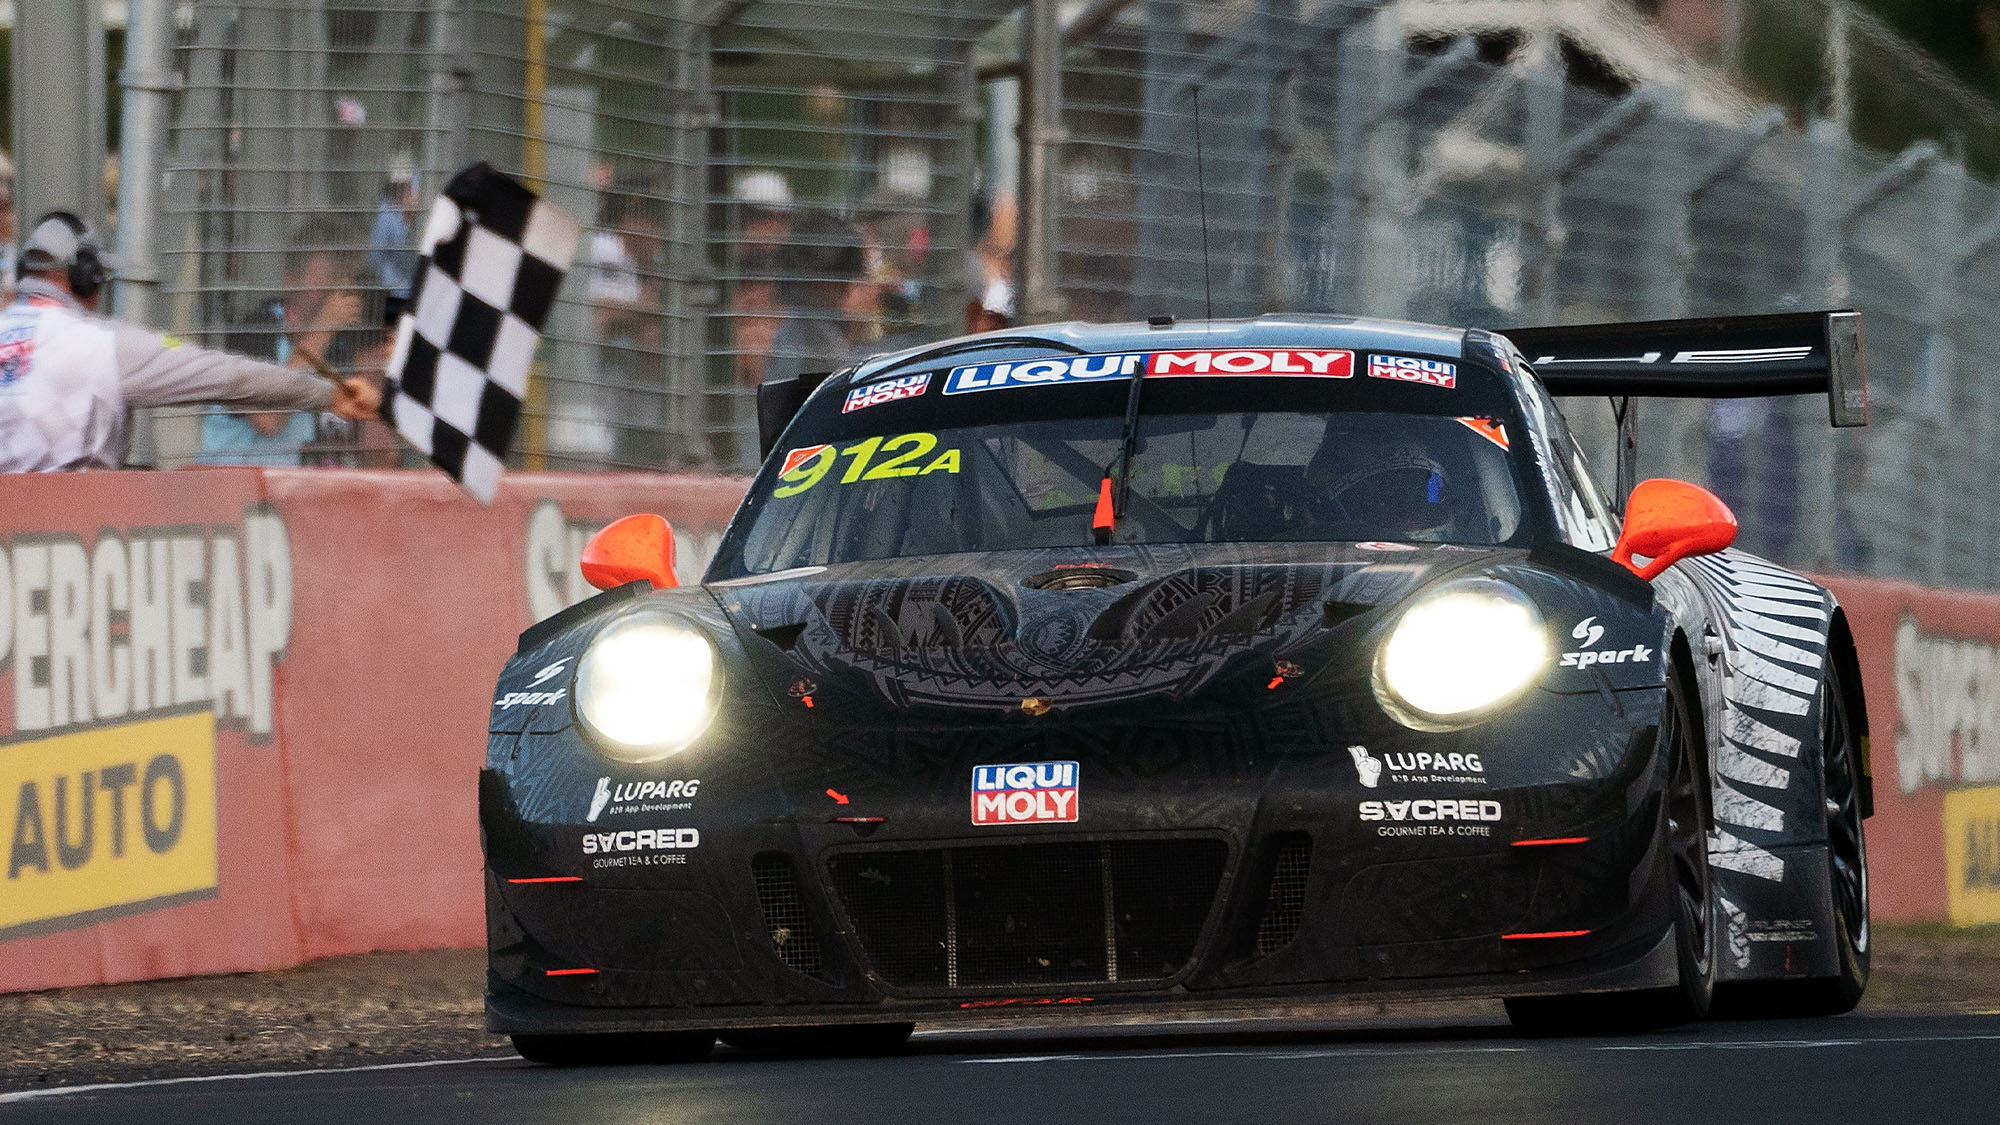 Earl Bamber MotorSport takes 1st at the 2019 Bathurst 12 Hours